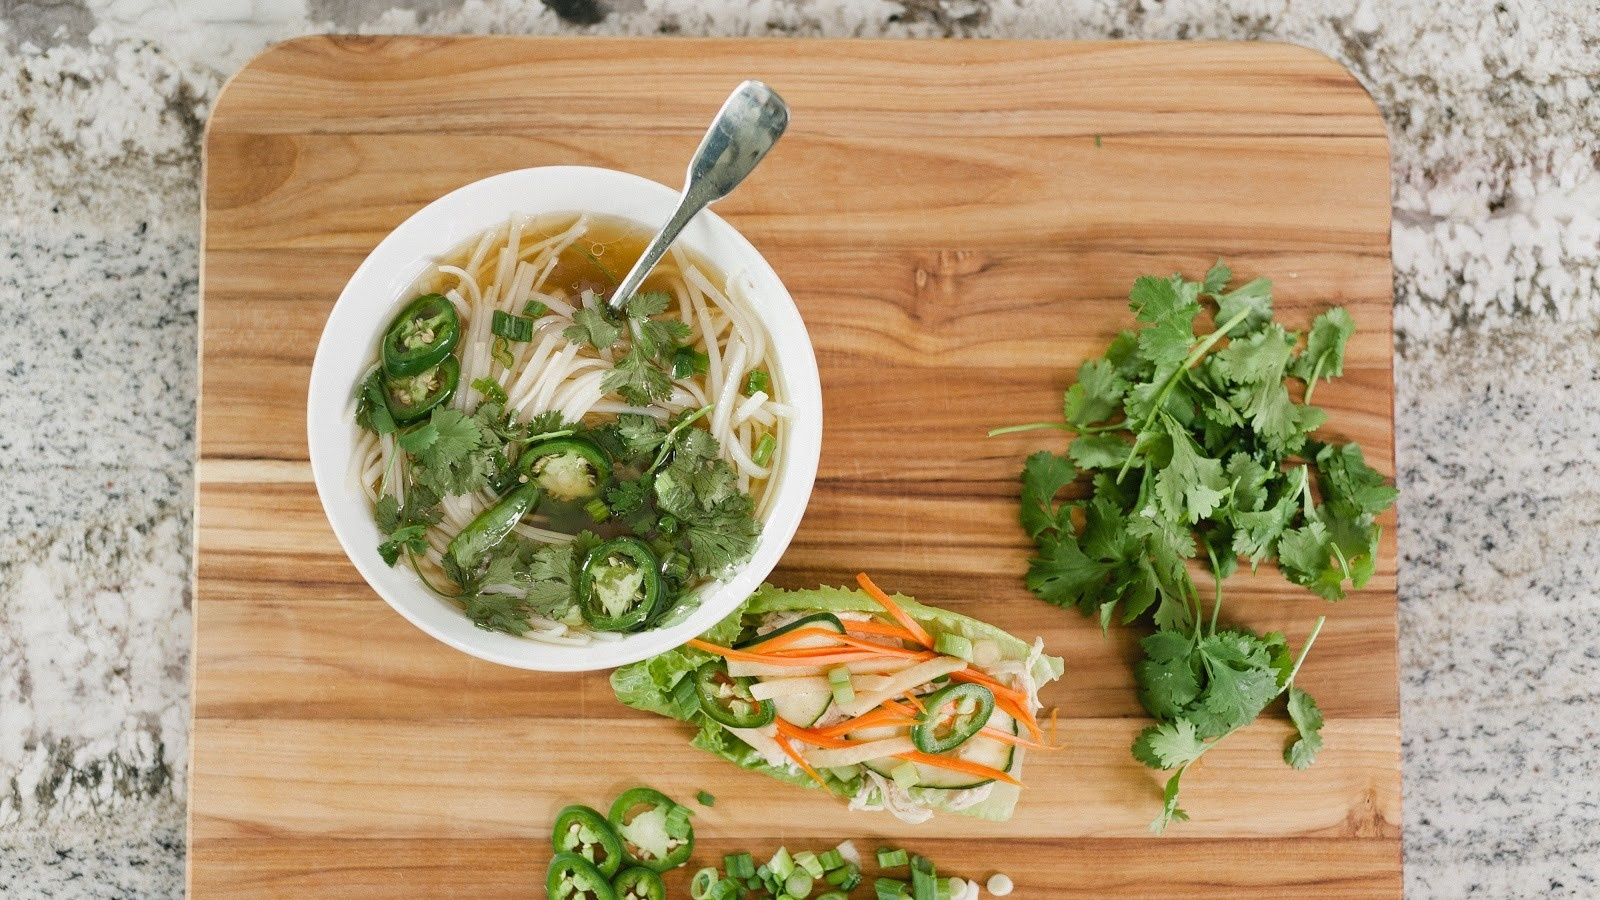 Homemade Bone Broth Pho & Banh Mi Wraps